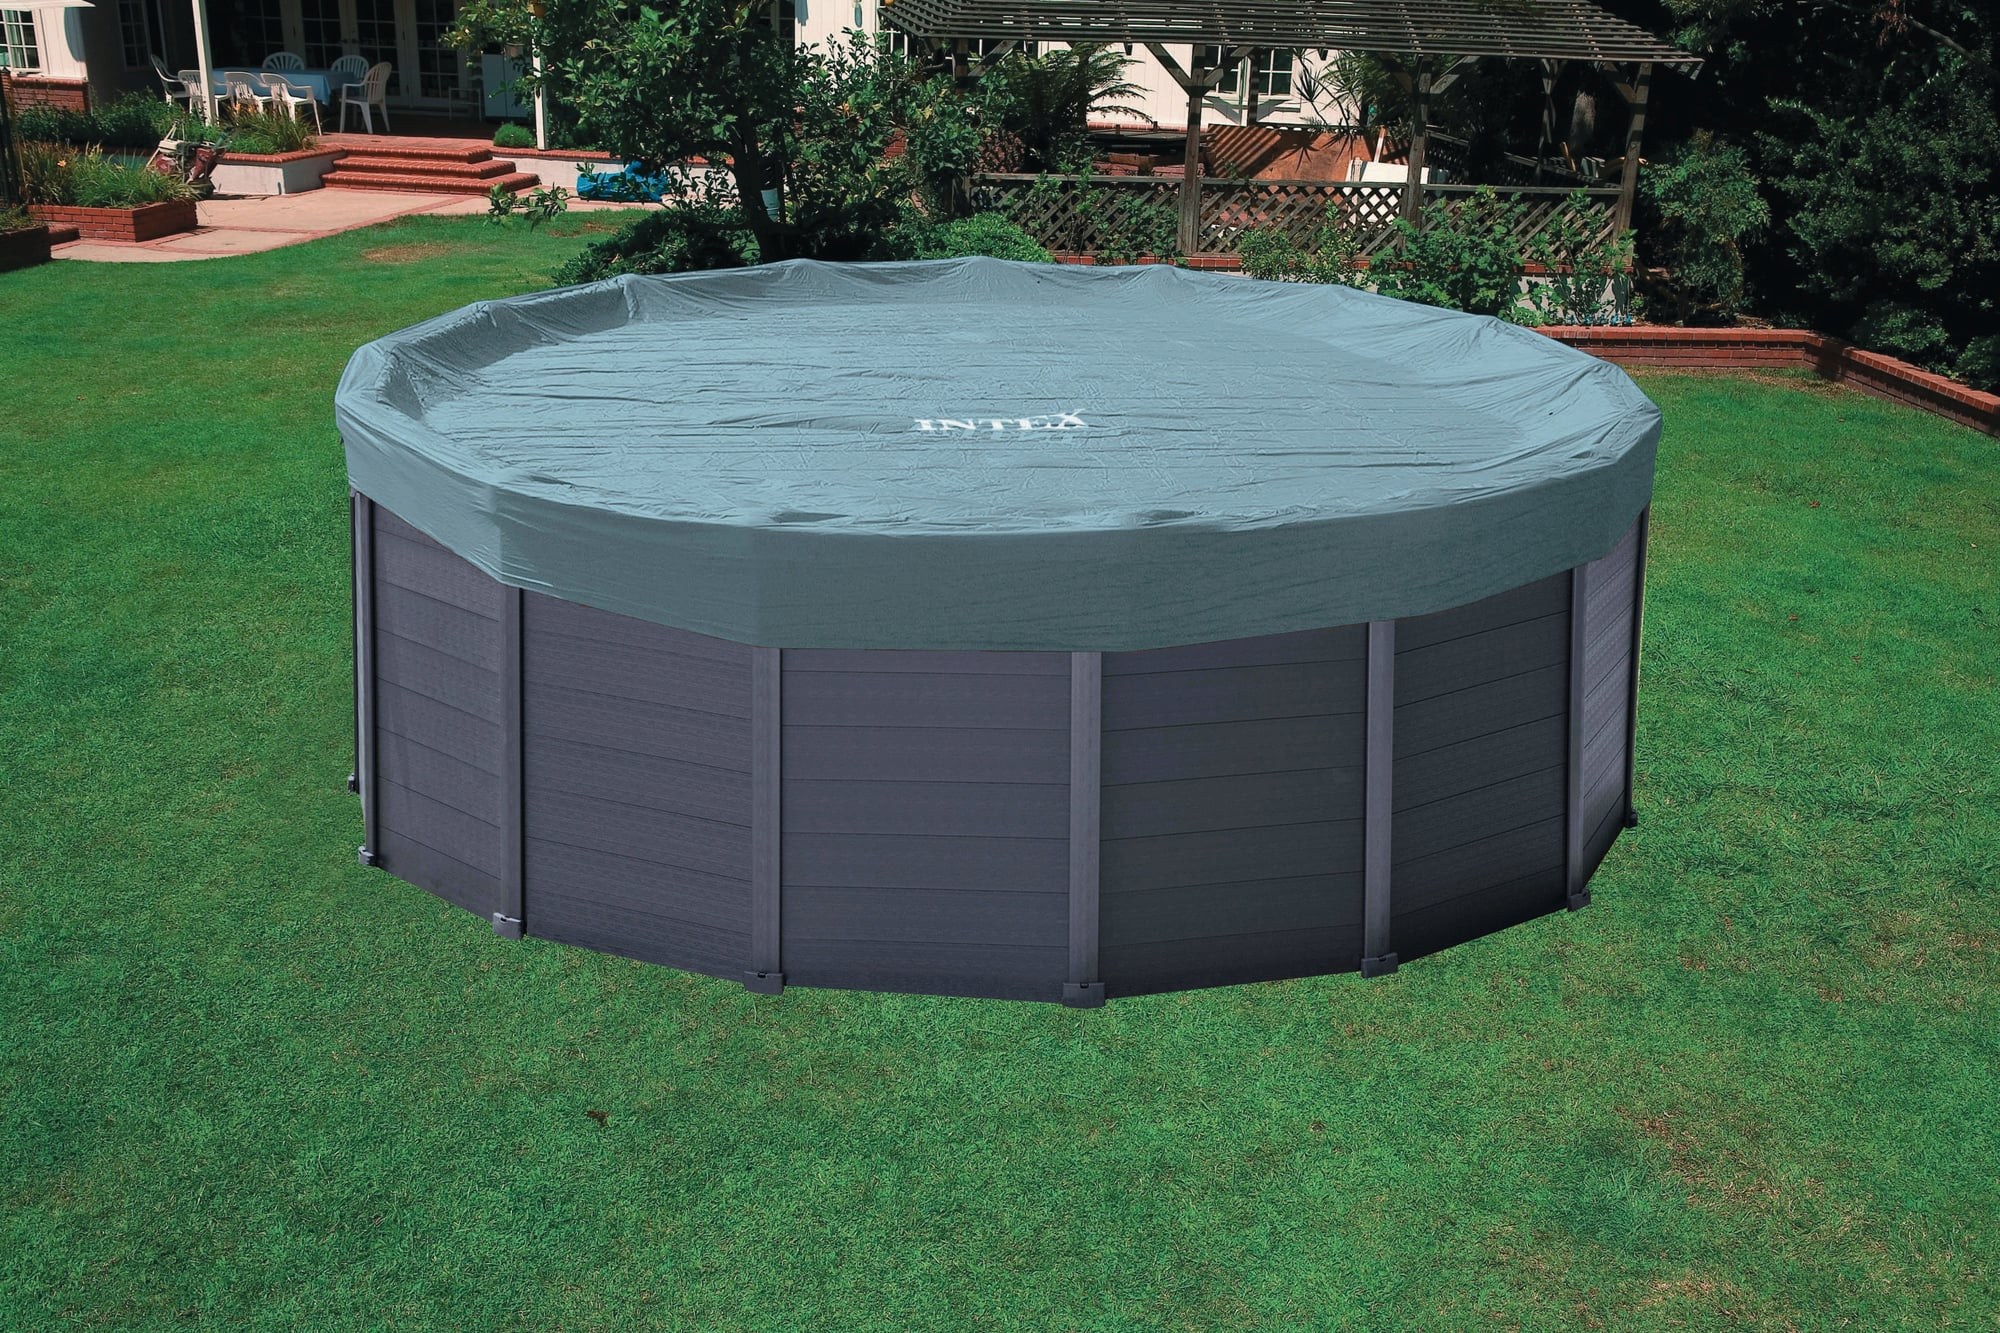 Hobby Pool Sandfilteranlage Intex Frame Pool Graphit Ø 478 X 124 Cm Pools Shop